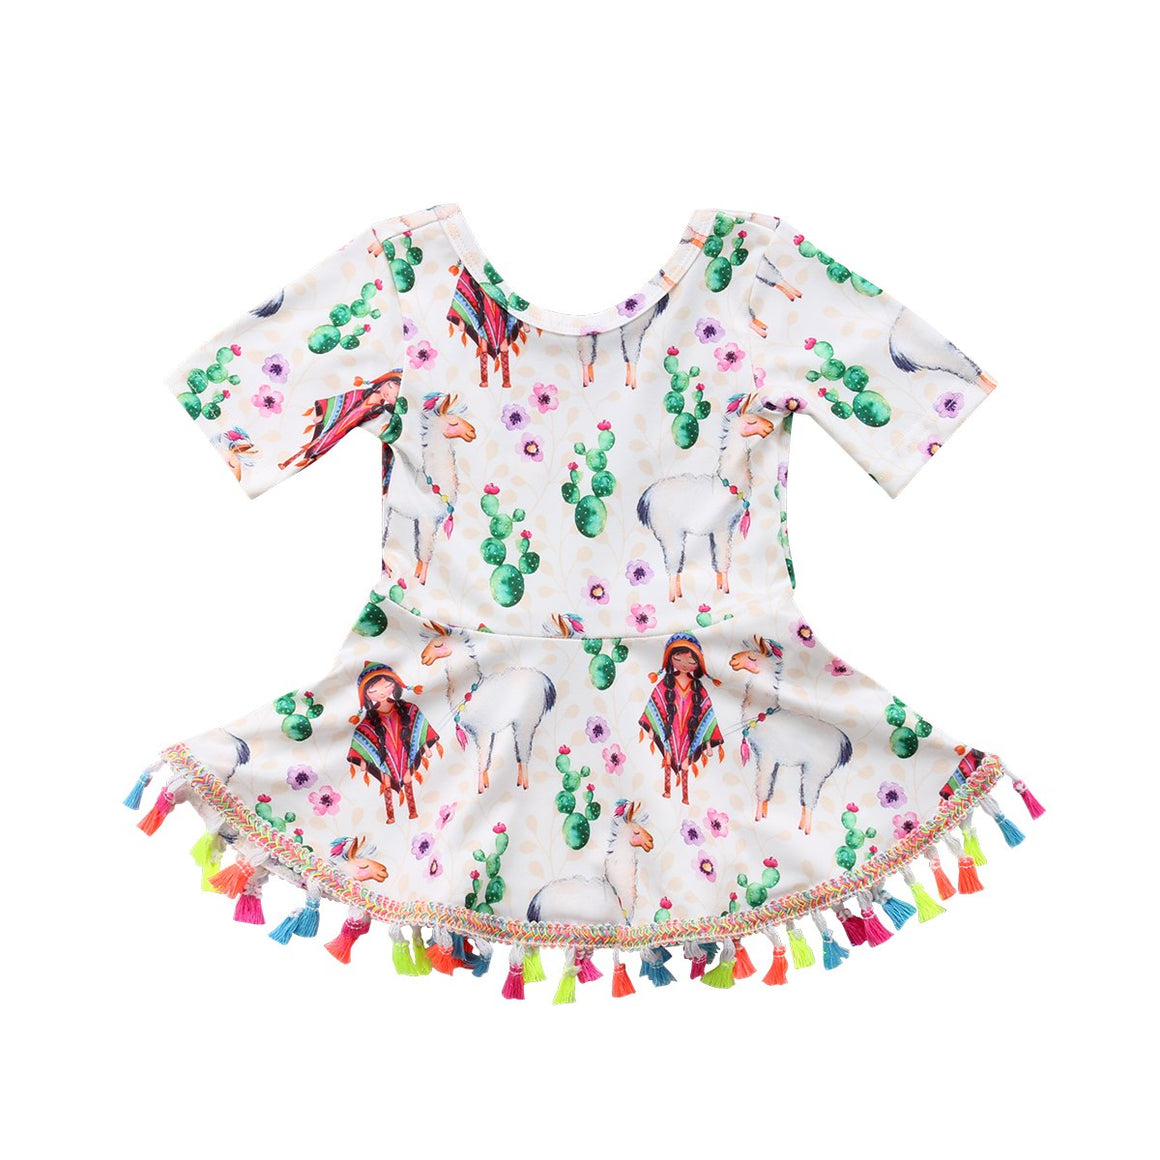 Llama Mini Dress